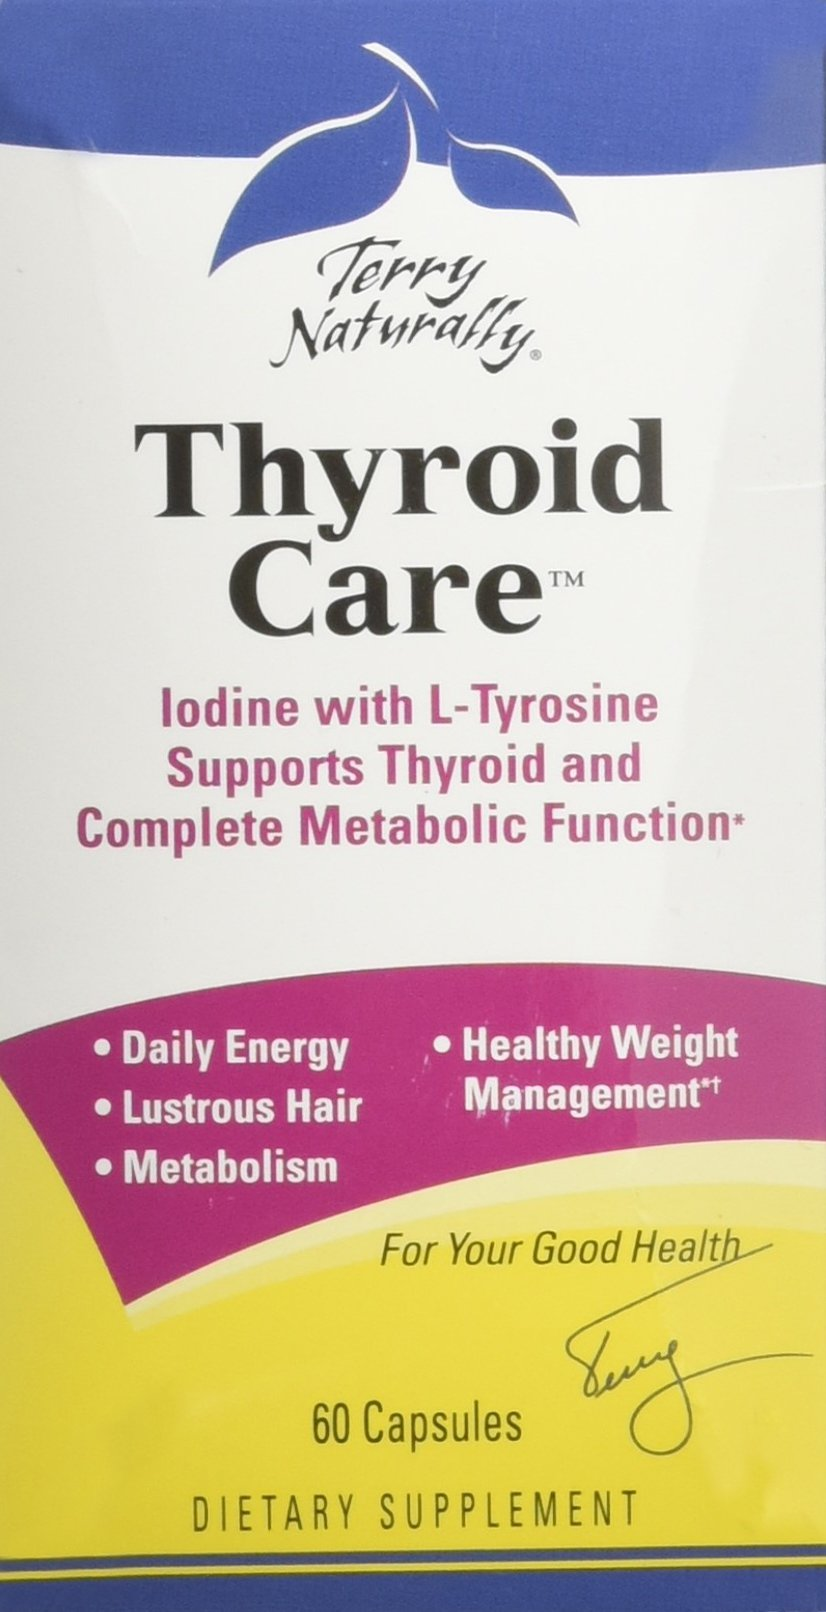 Terry Naturally Thyroid Care - Iodine + L-Tyrosine, 60 Capsules - Thyroid Support Supplement, Promotes Energy, Metabolism & Lustrous Hair - Non-GMO, Gluten-Free, Kosher - 30 Servings by Terry Naturally